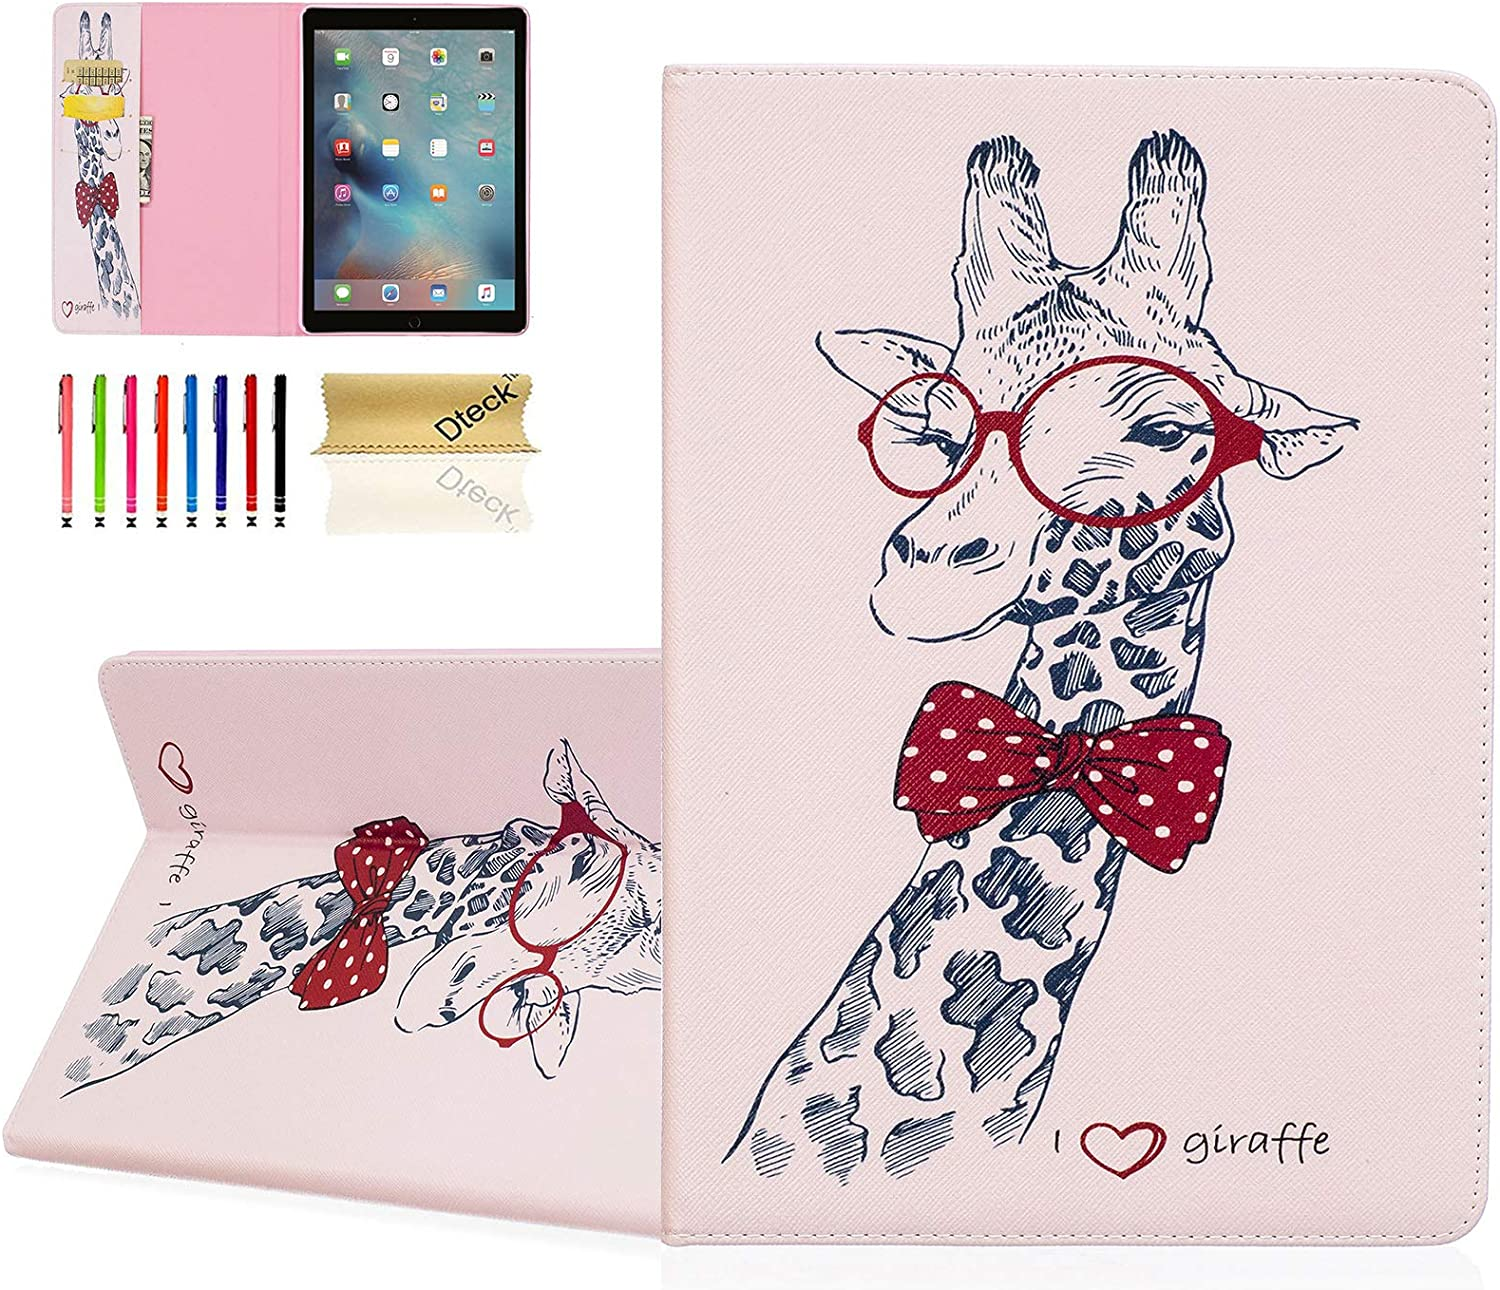 """Dteck Slim Fit Case for iPad Air 10.5-Inch 2019 (A2123 /A2152 /A2153) and iPad Pro 10.5"""" 2017 (A1701 /A1709) - PU Leather Stand Protective Pretty Wallet Case Cover with Stylus Pen/Card Slots-Giraffe"""